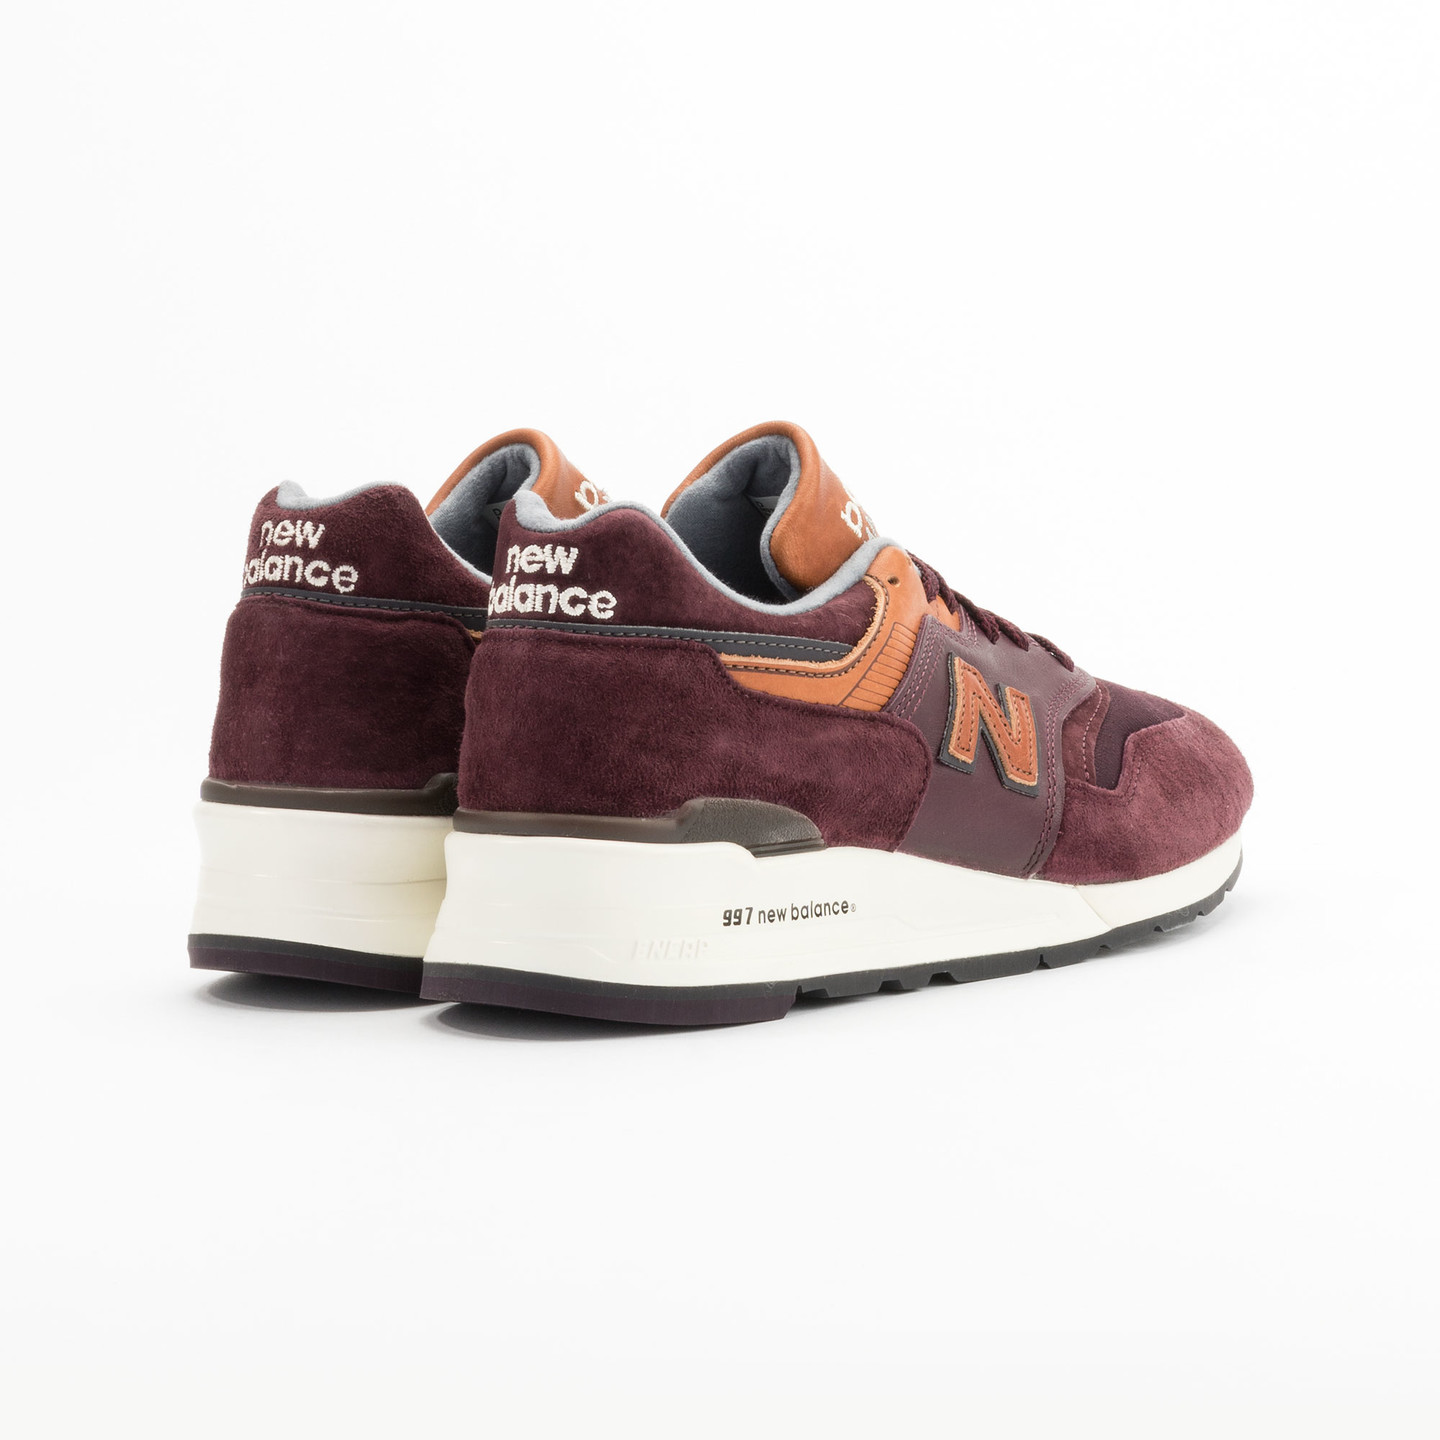 New Balance M997 Made in USA Burgundy / Light Brown M997DSLR-46.5